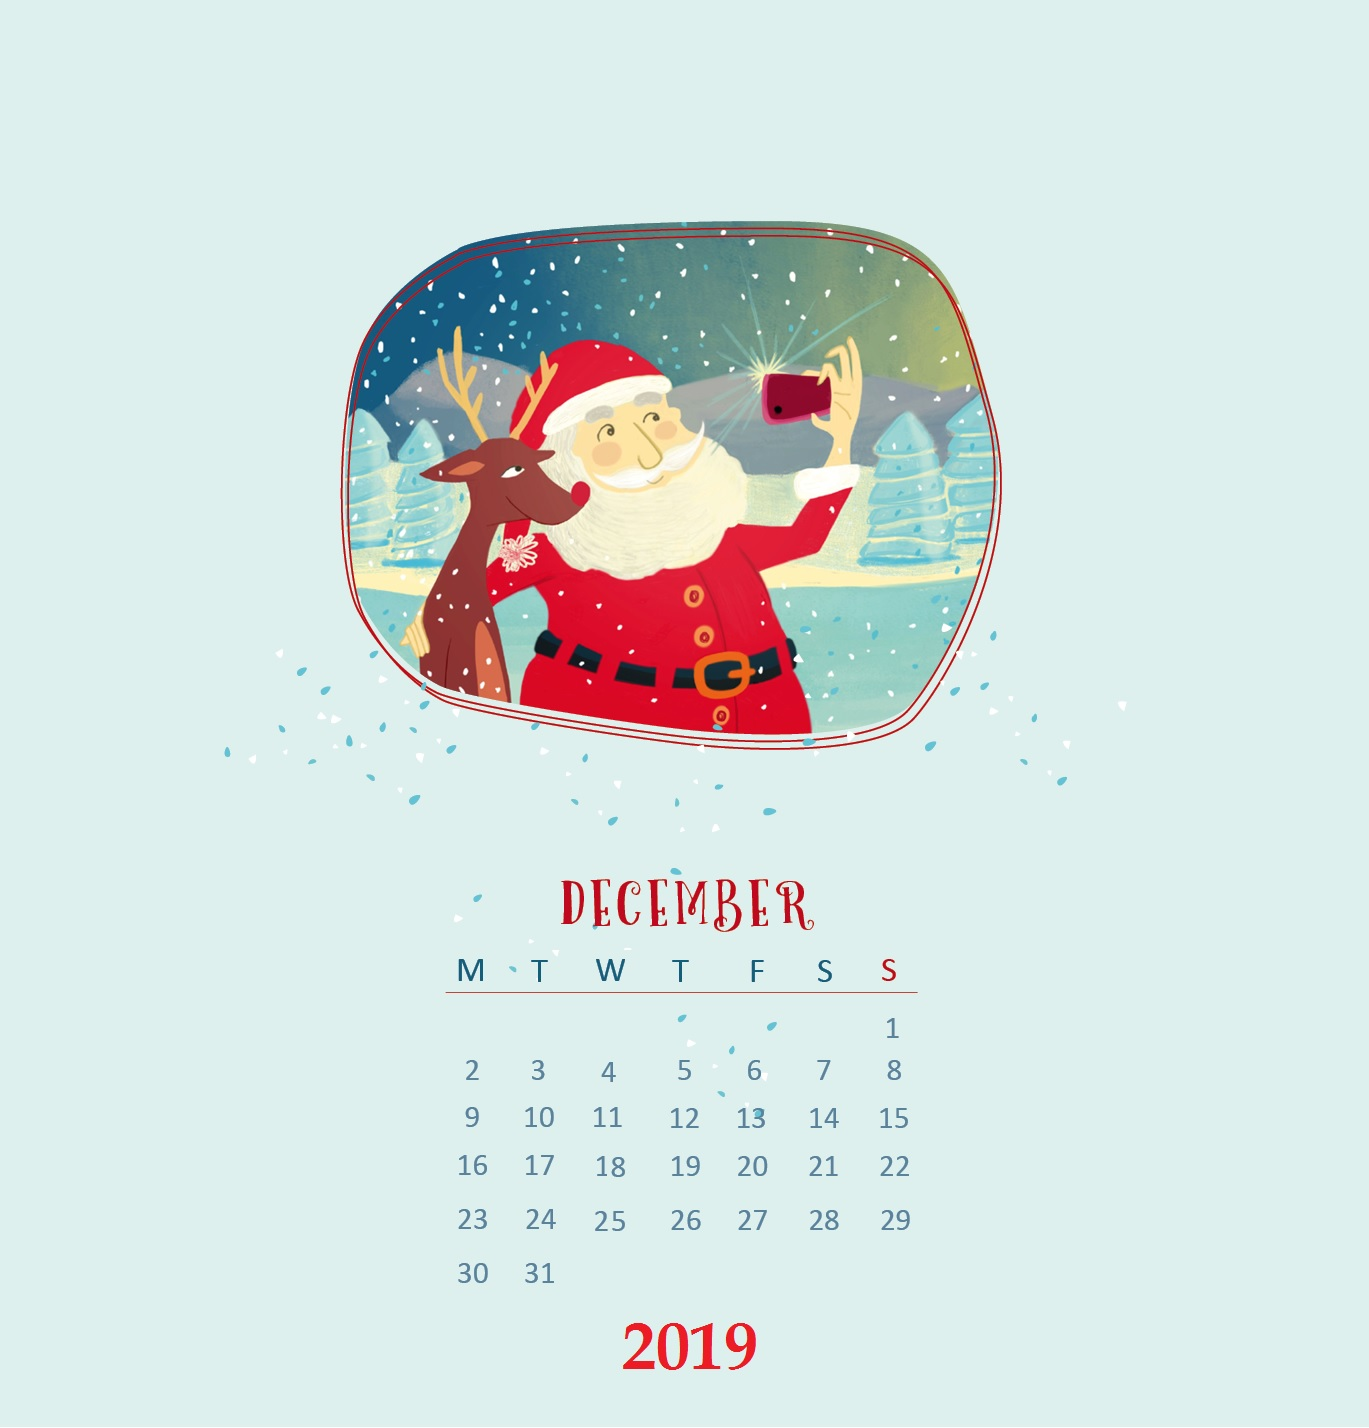 Cute December 2019 iPhone Wallpaper